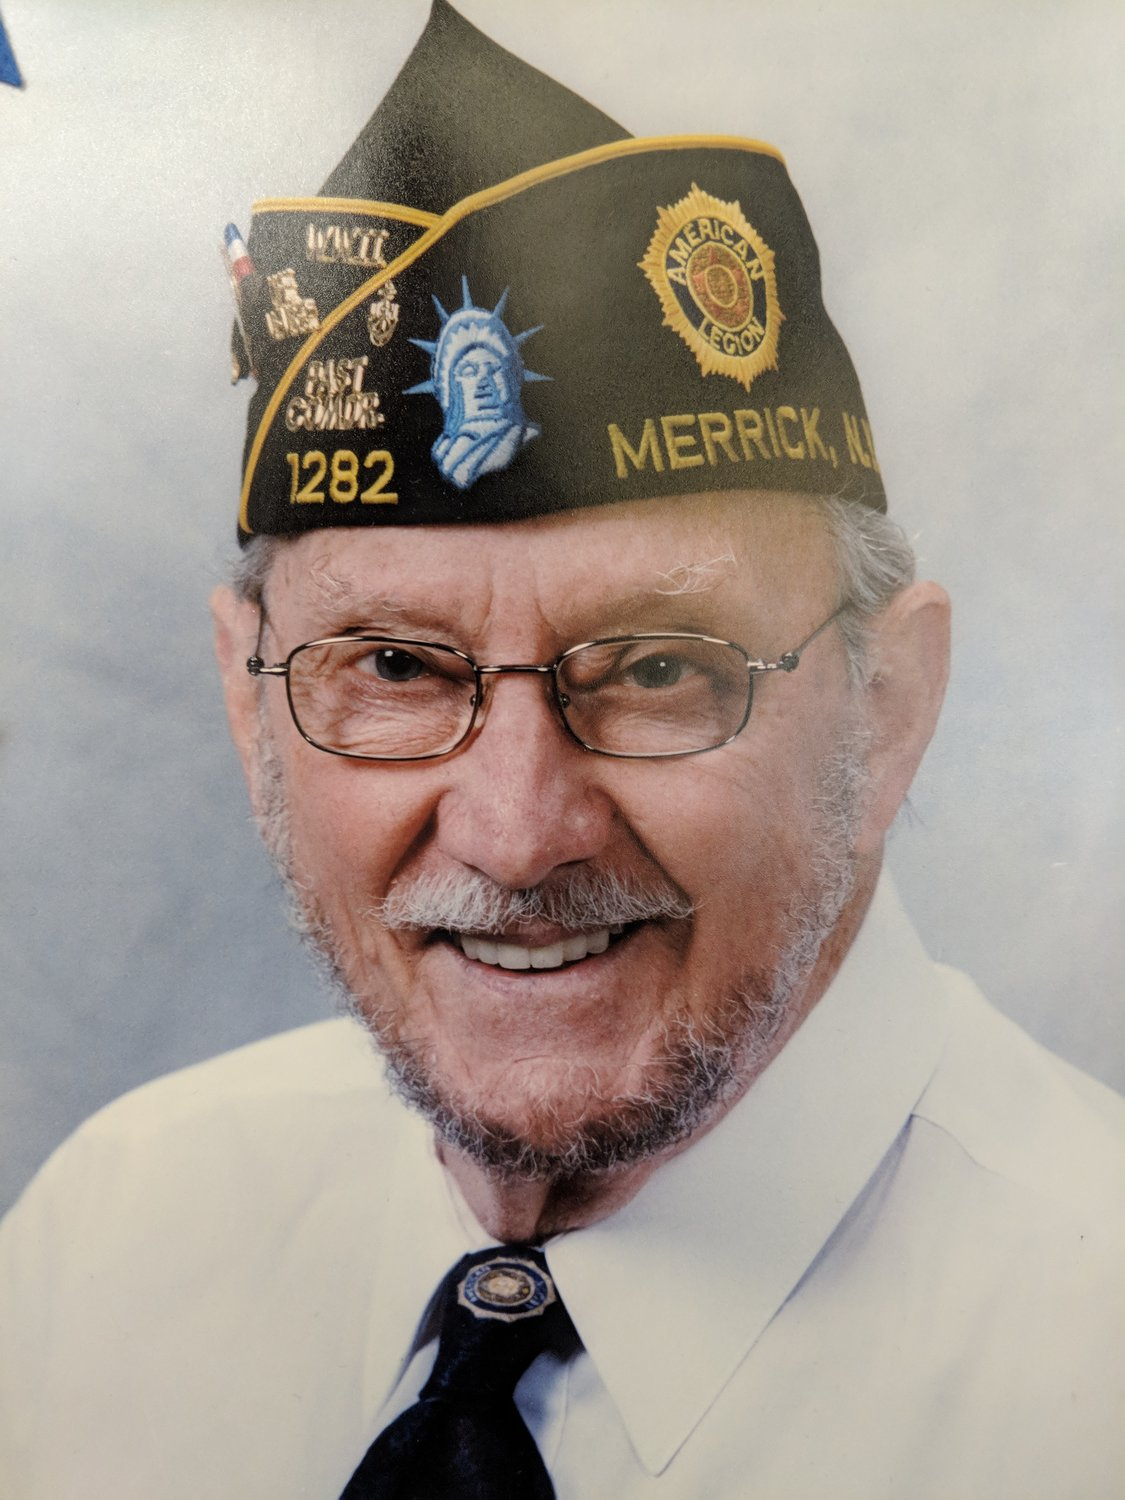 Vincent Gabriele served as commander of American Legion Post 1282 in Merrick, and was instrumental in helping its membership grow.